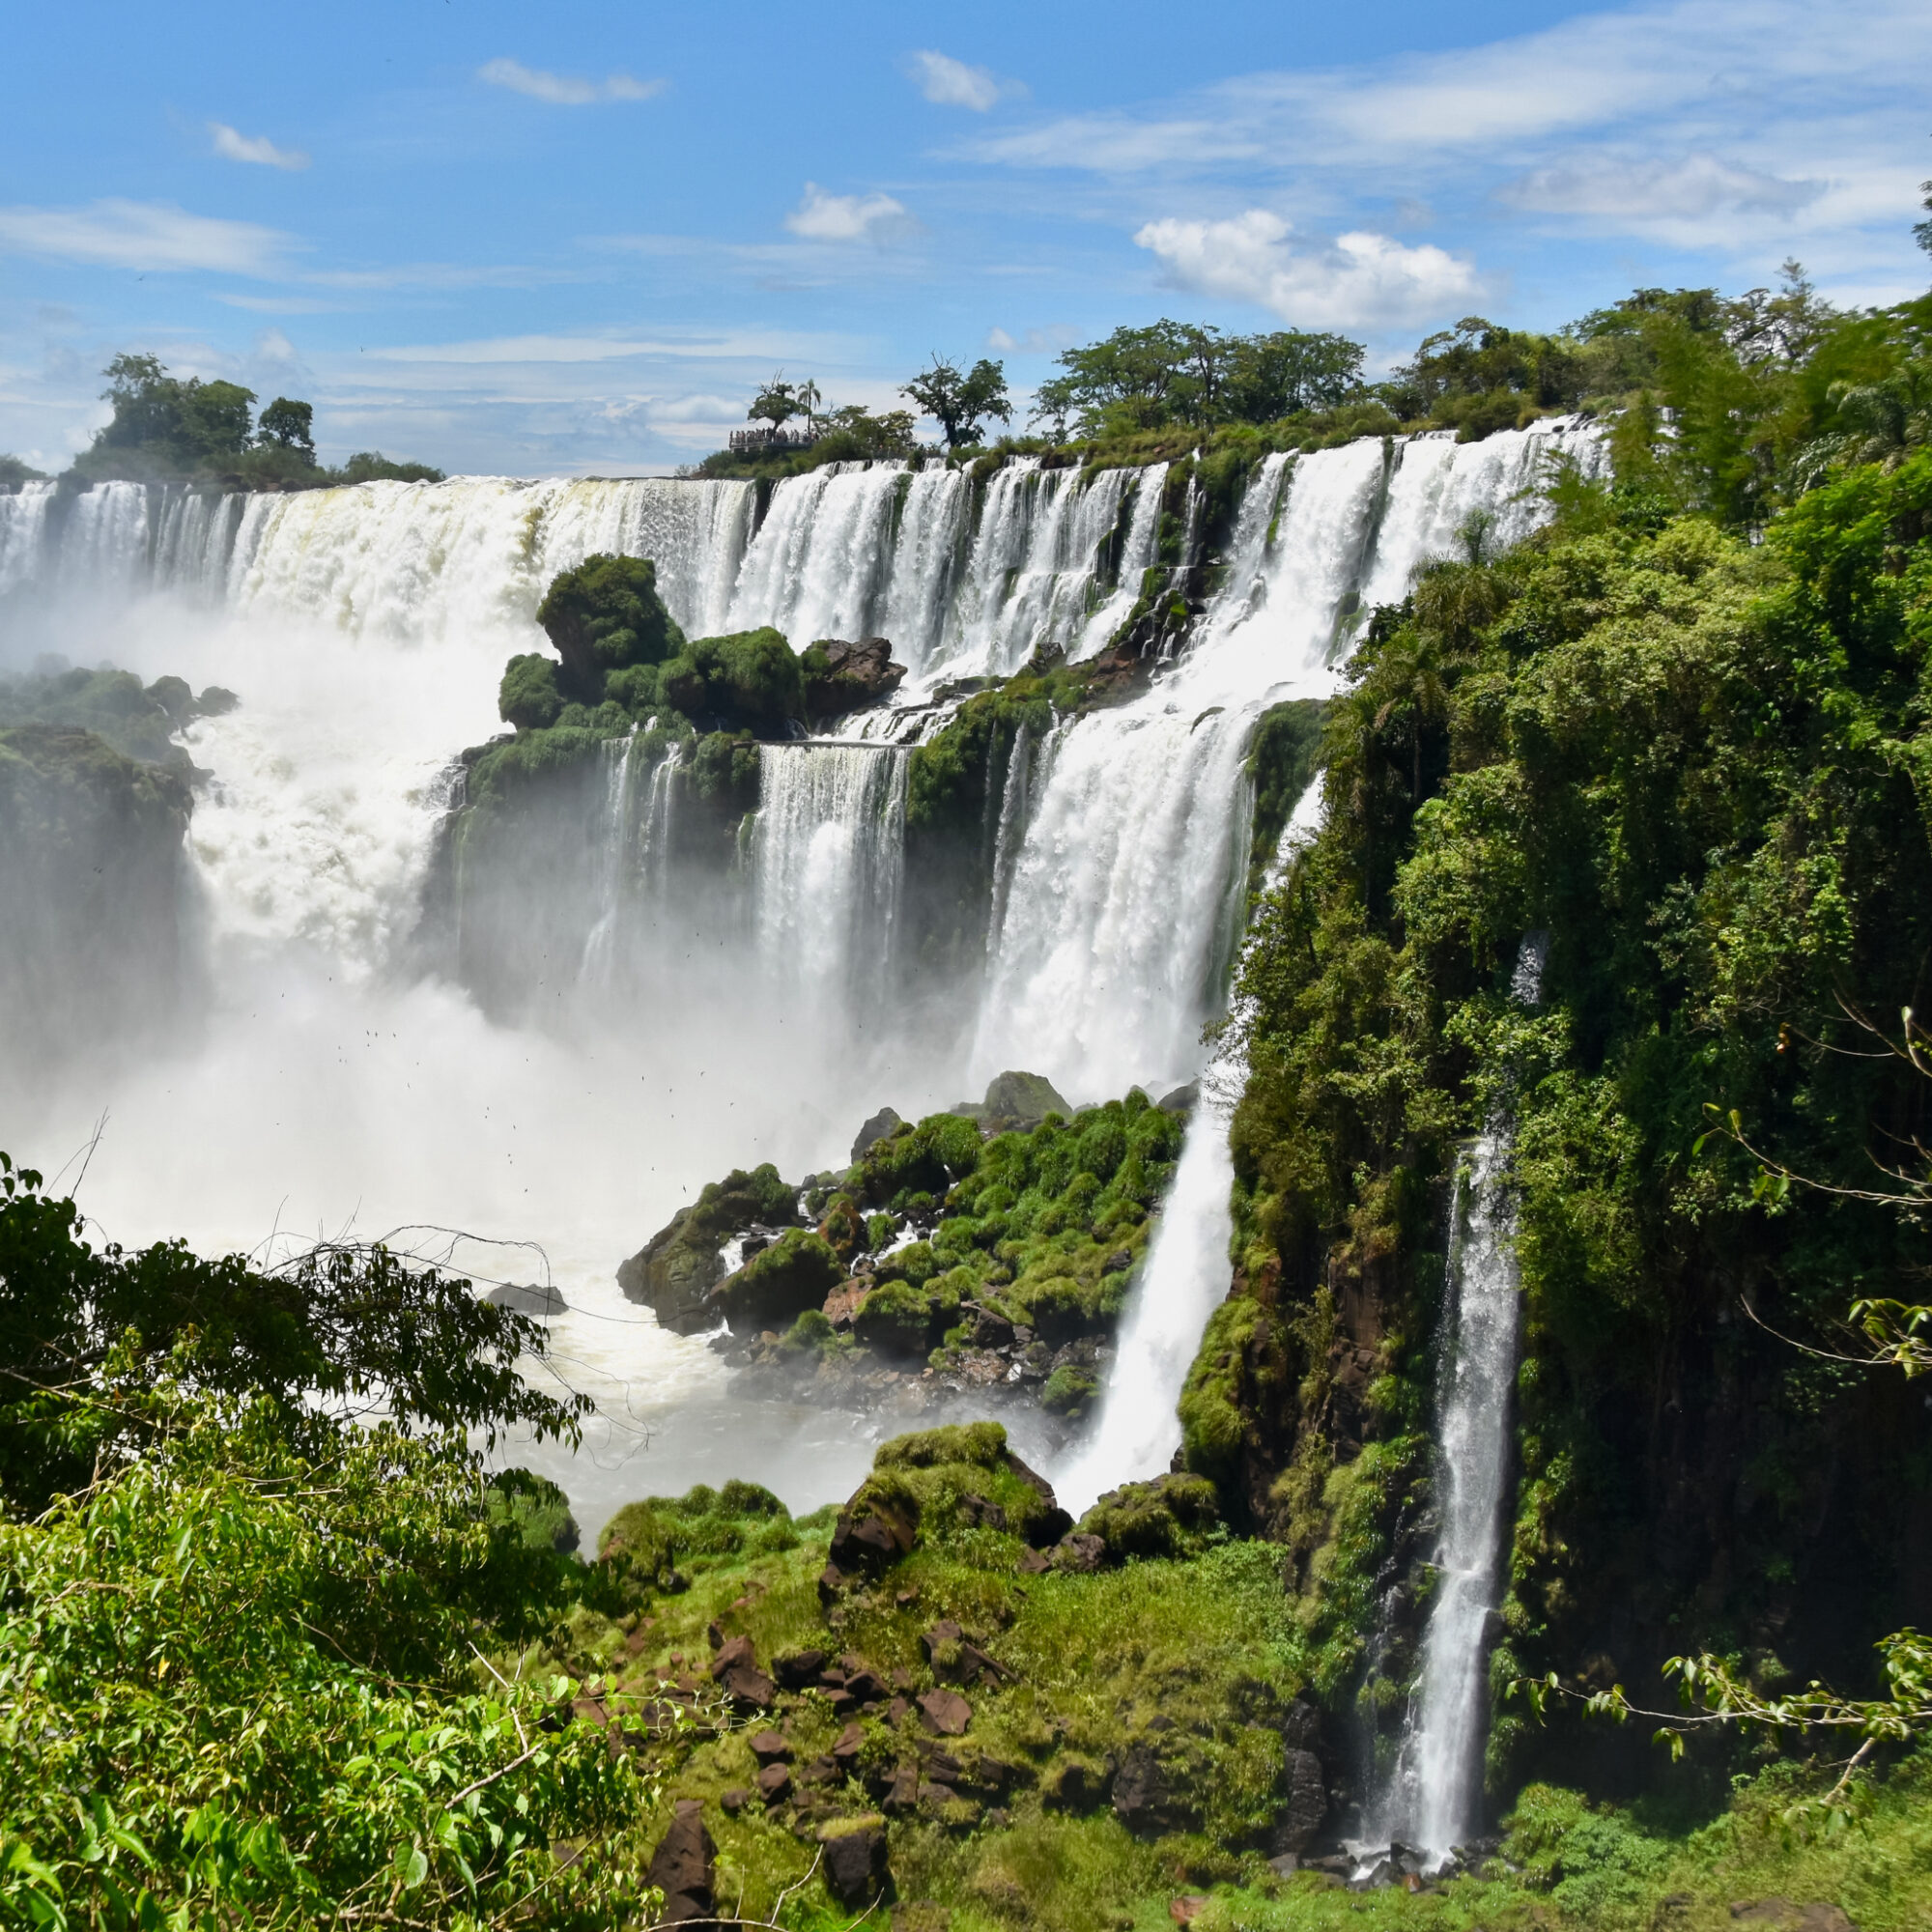 Iguazu Falls at the border between Argentina and Brazil.